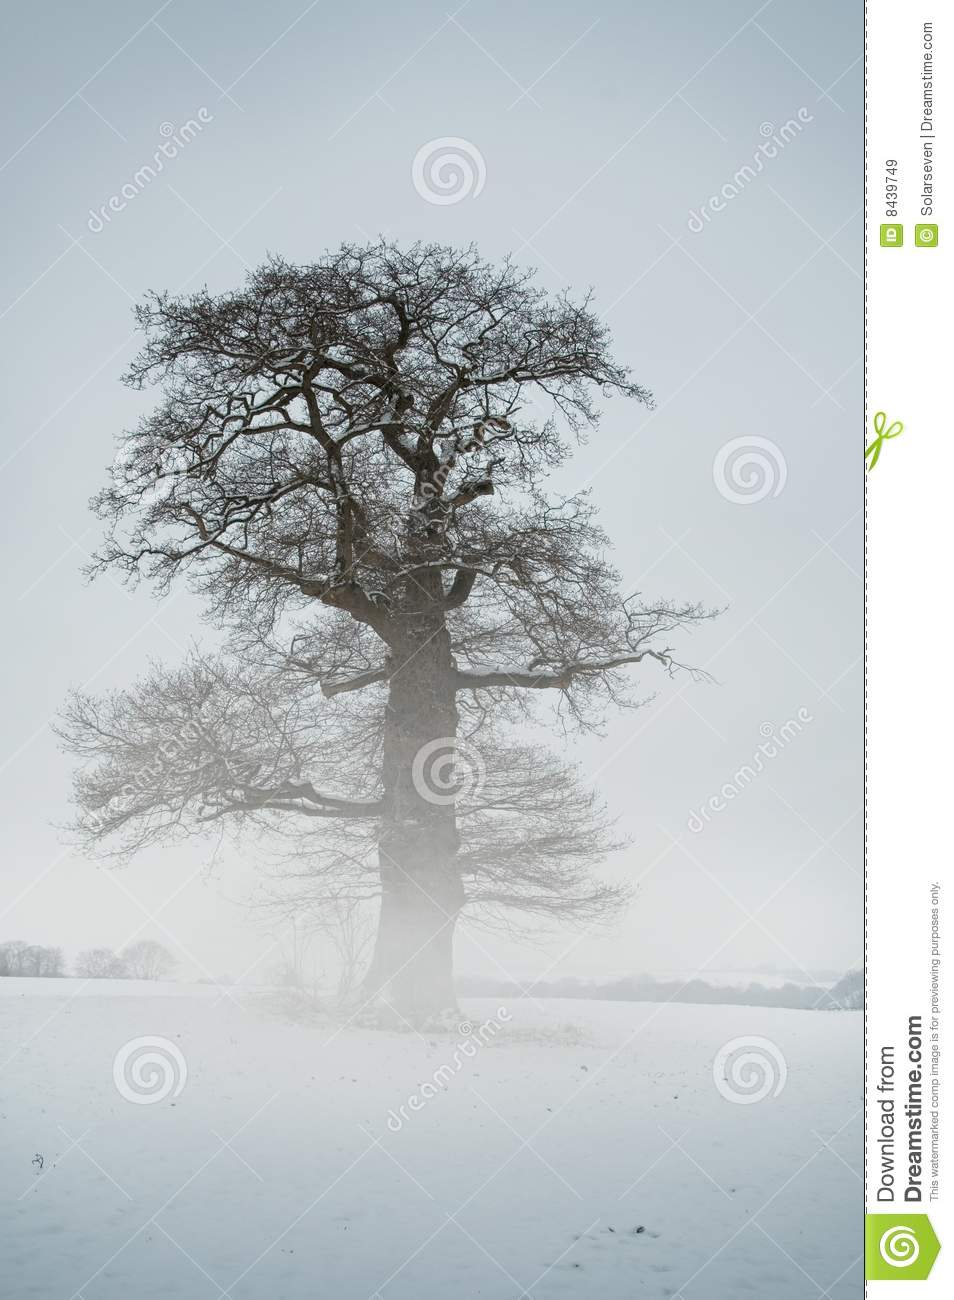 Mist Tree - Winter